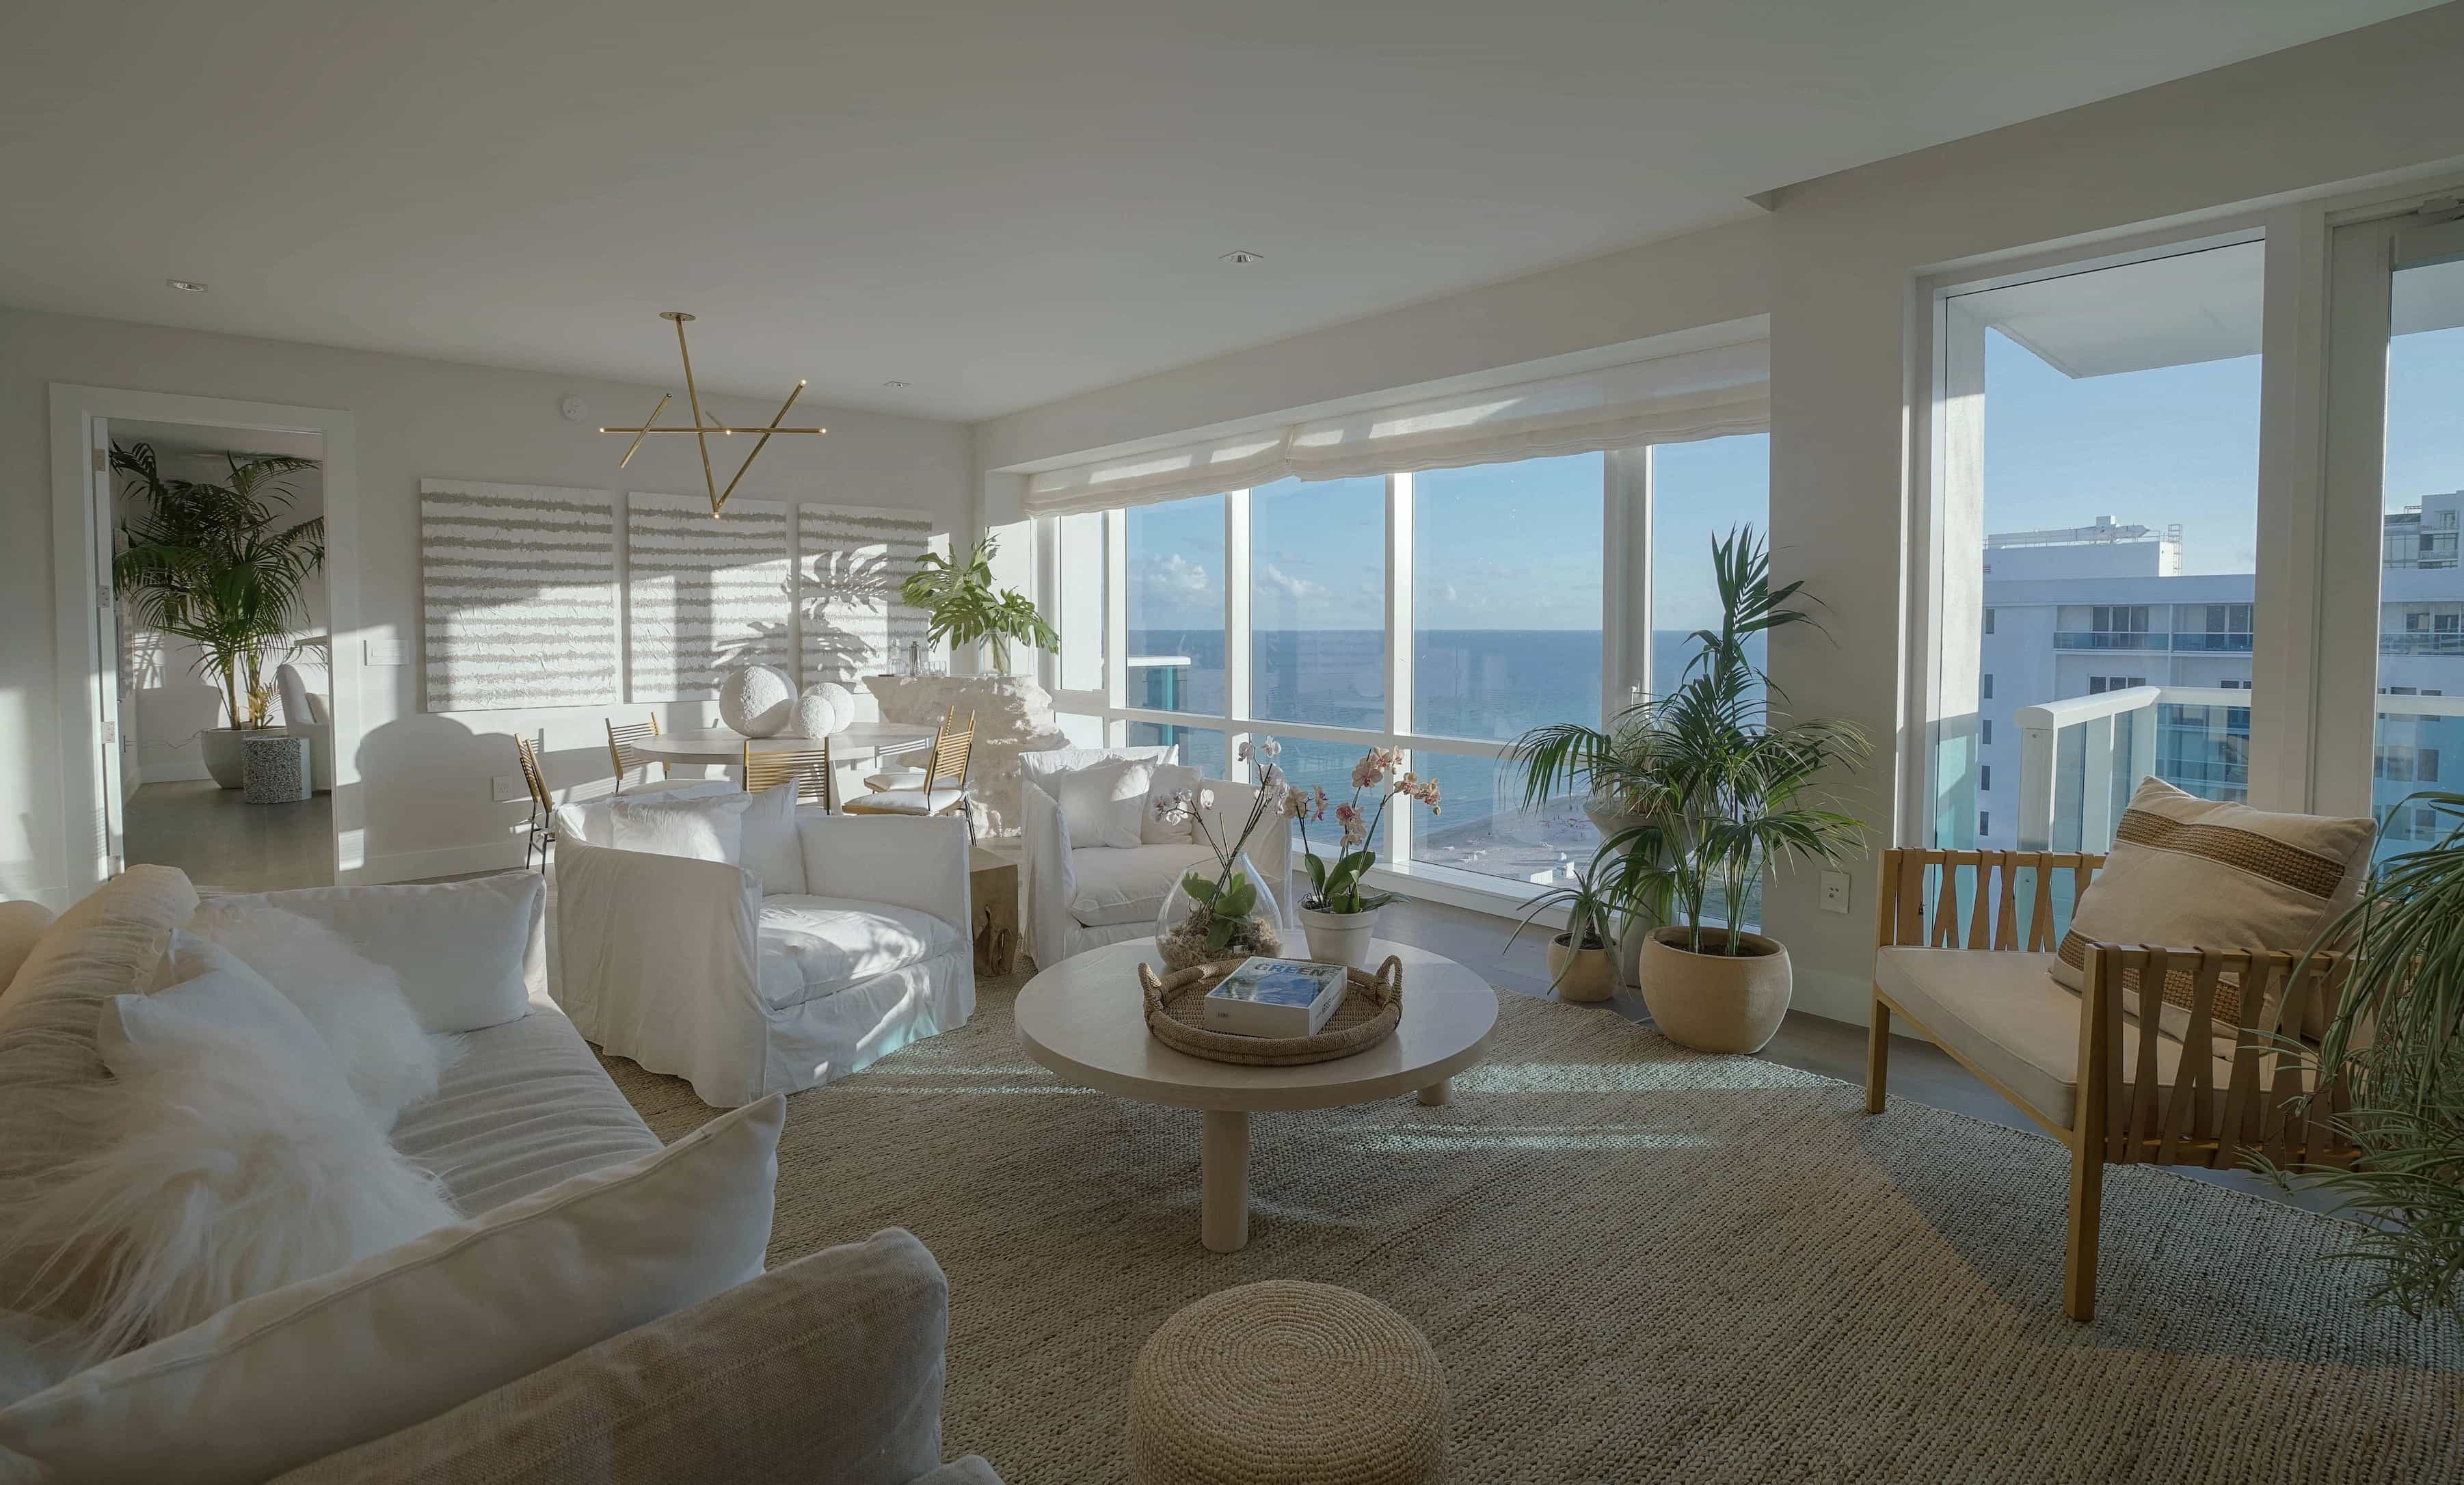 Samuel Amoia Samuel Amoia Interior design for Penthouse at the 1 Hotel in South Beach